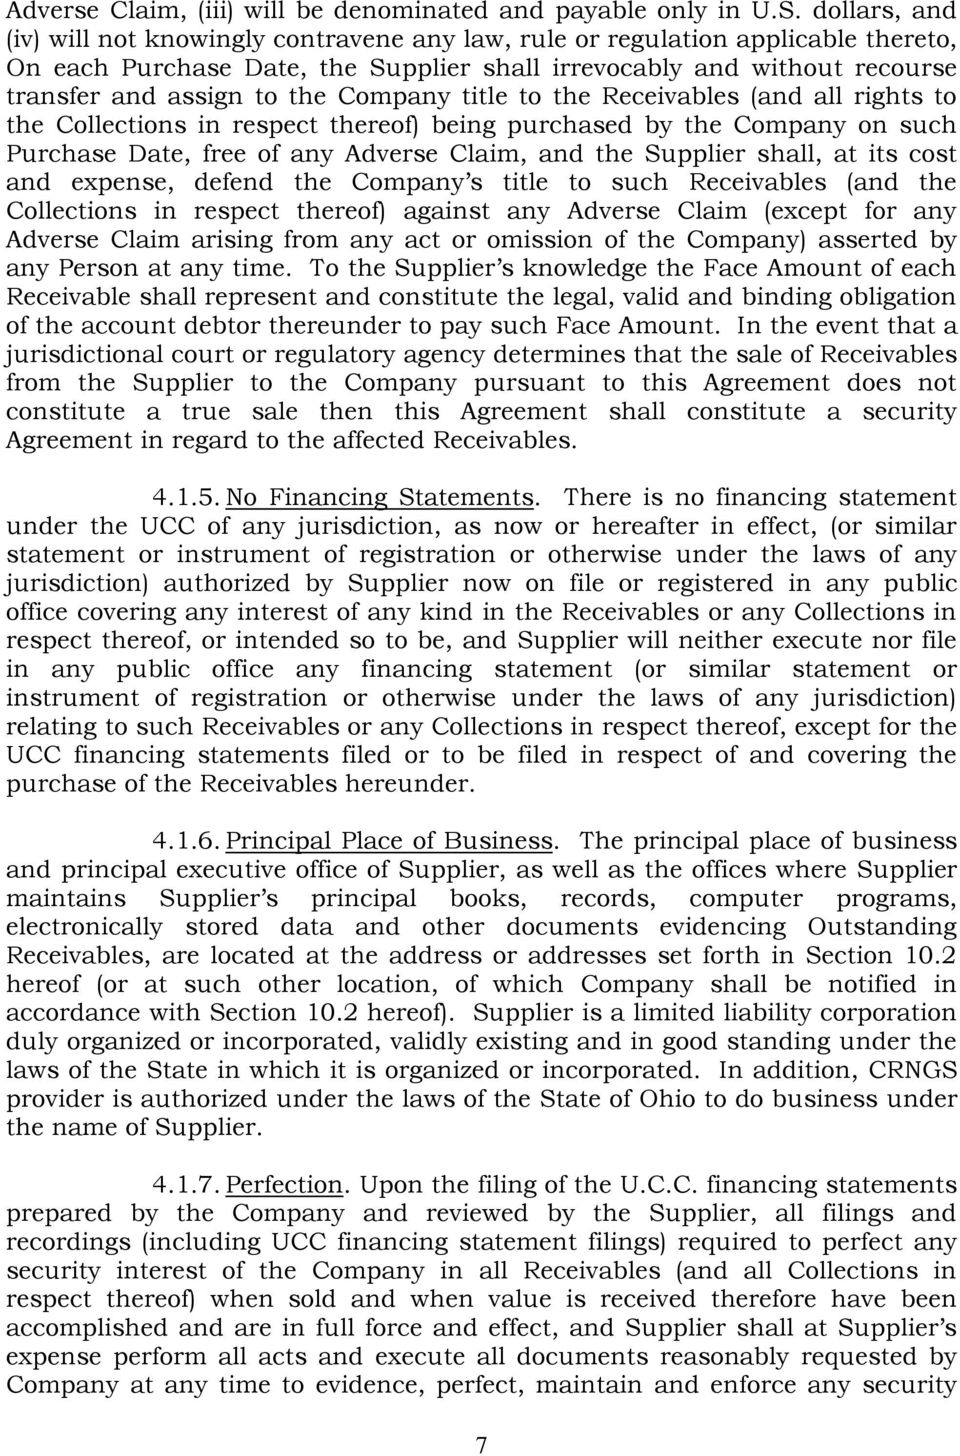 Company title to the Receivables (and all rights to the Collections in respect thereof) being purchased by the Company on such Purchase Date, free of any Adverse Claim, and the Supplier shall, at its